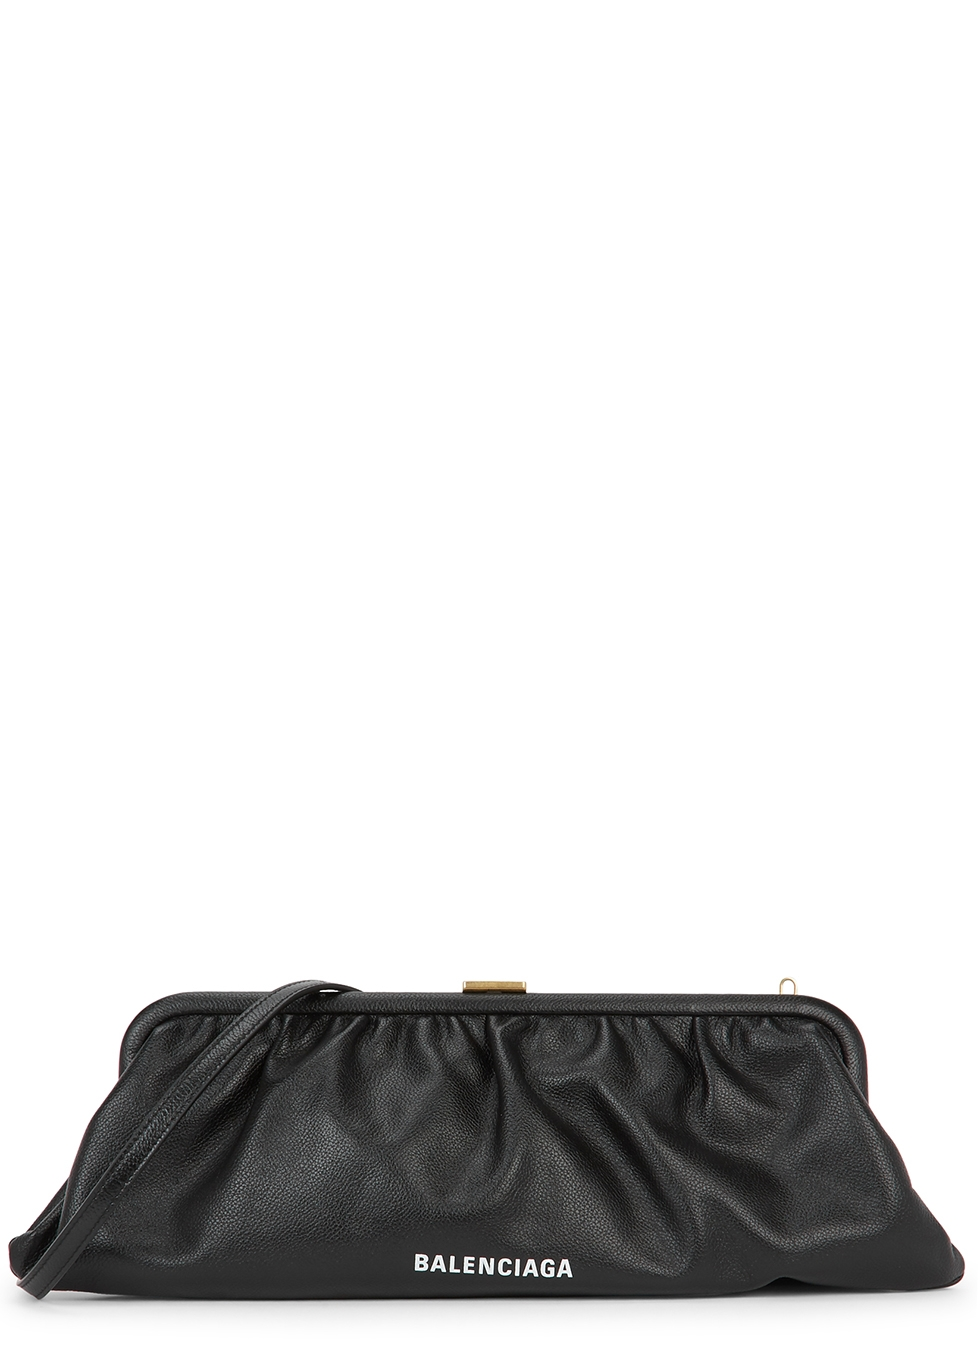 Cloud XL black leather clutch